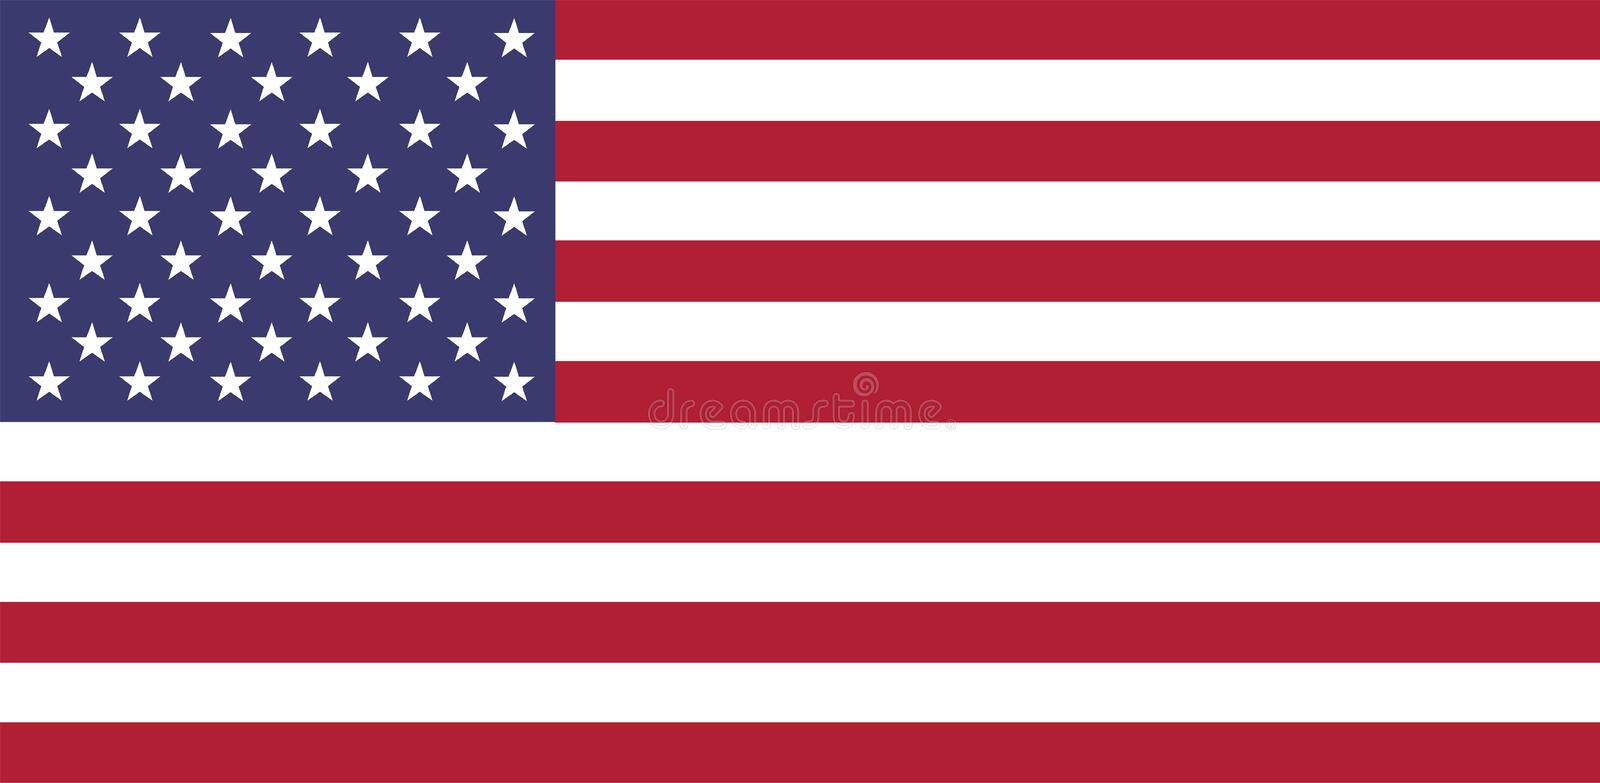 usa national tradional flag blue red white royalty free illustration